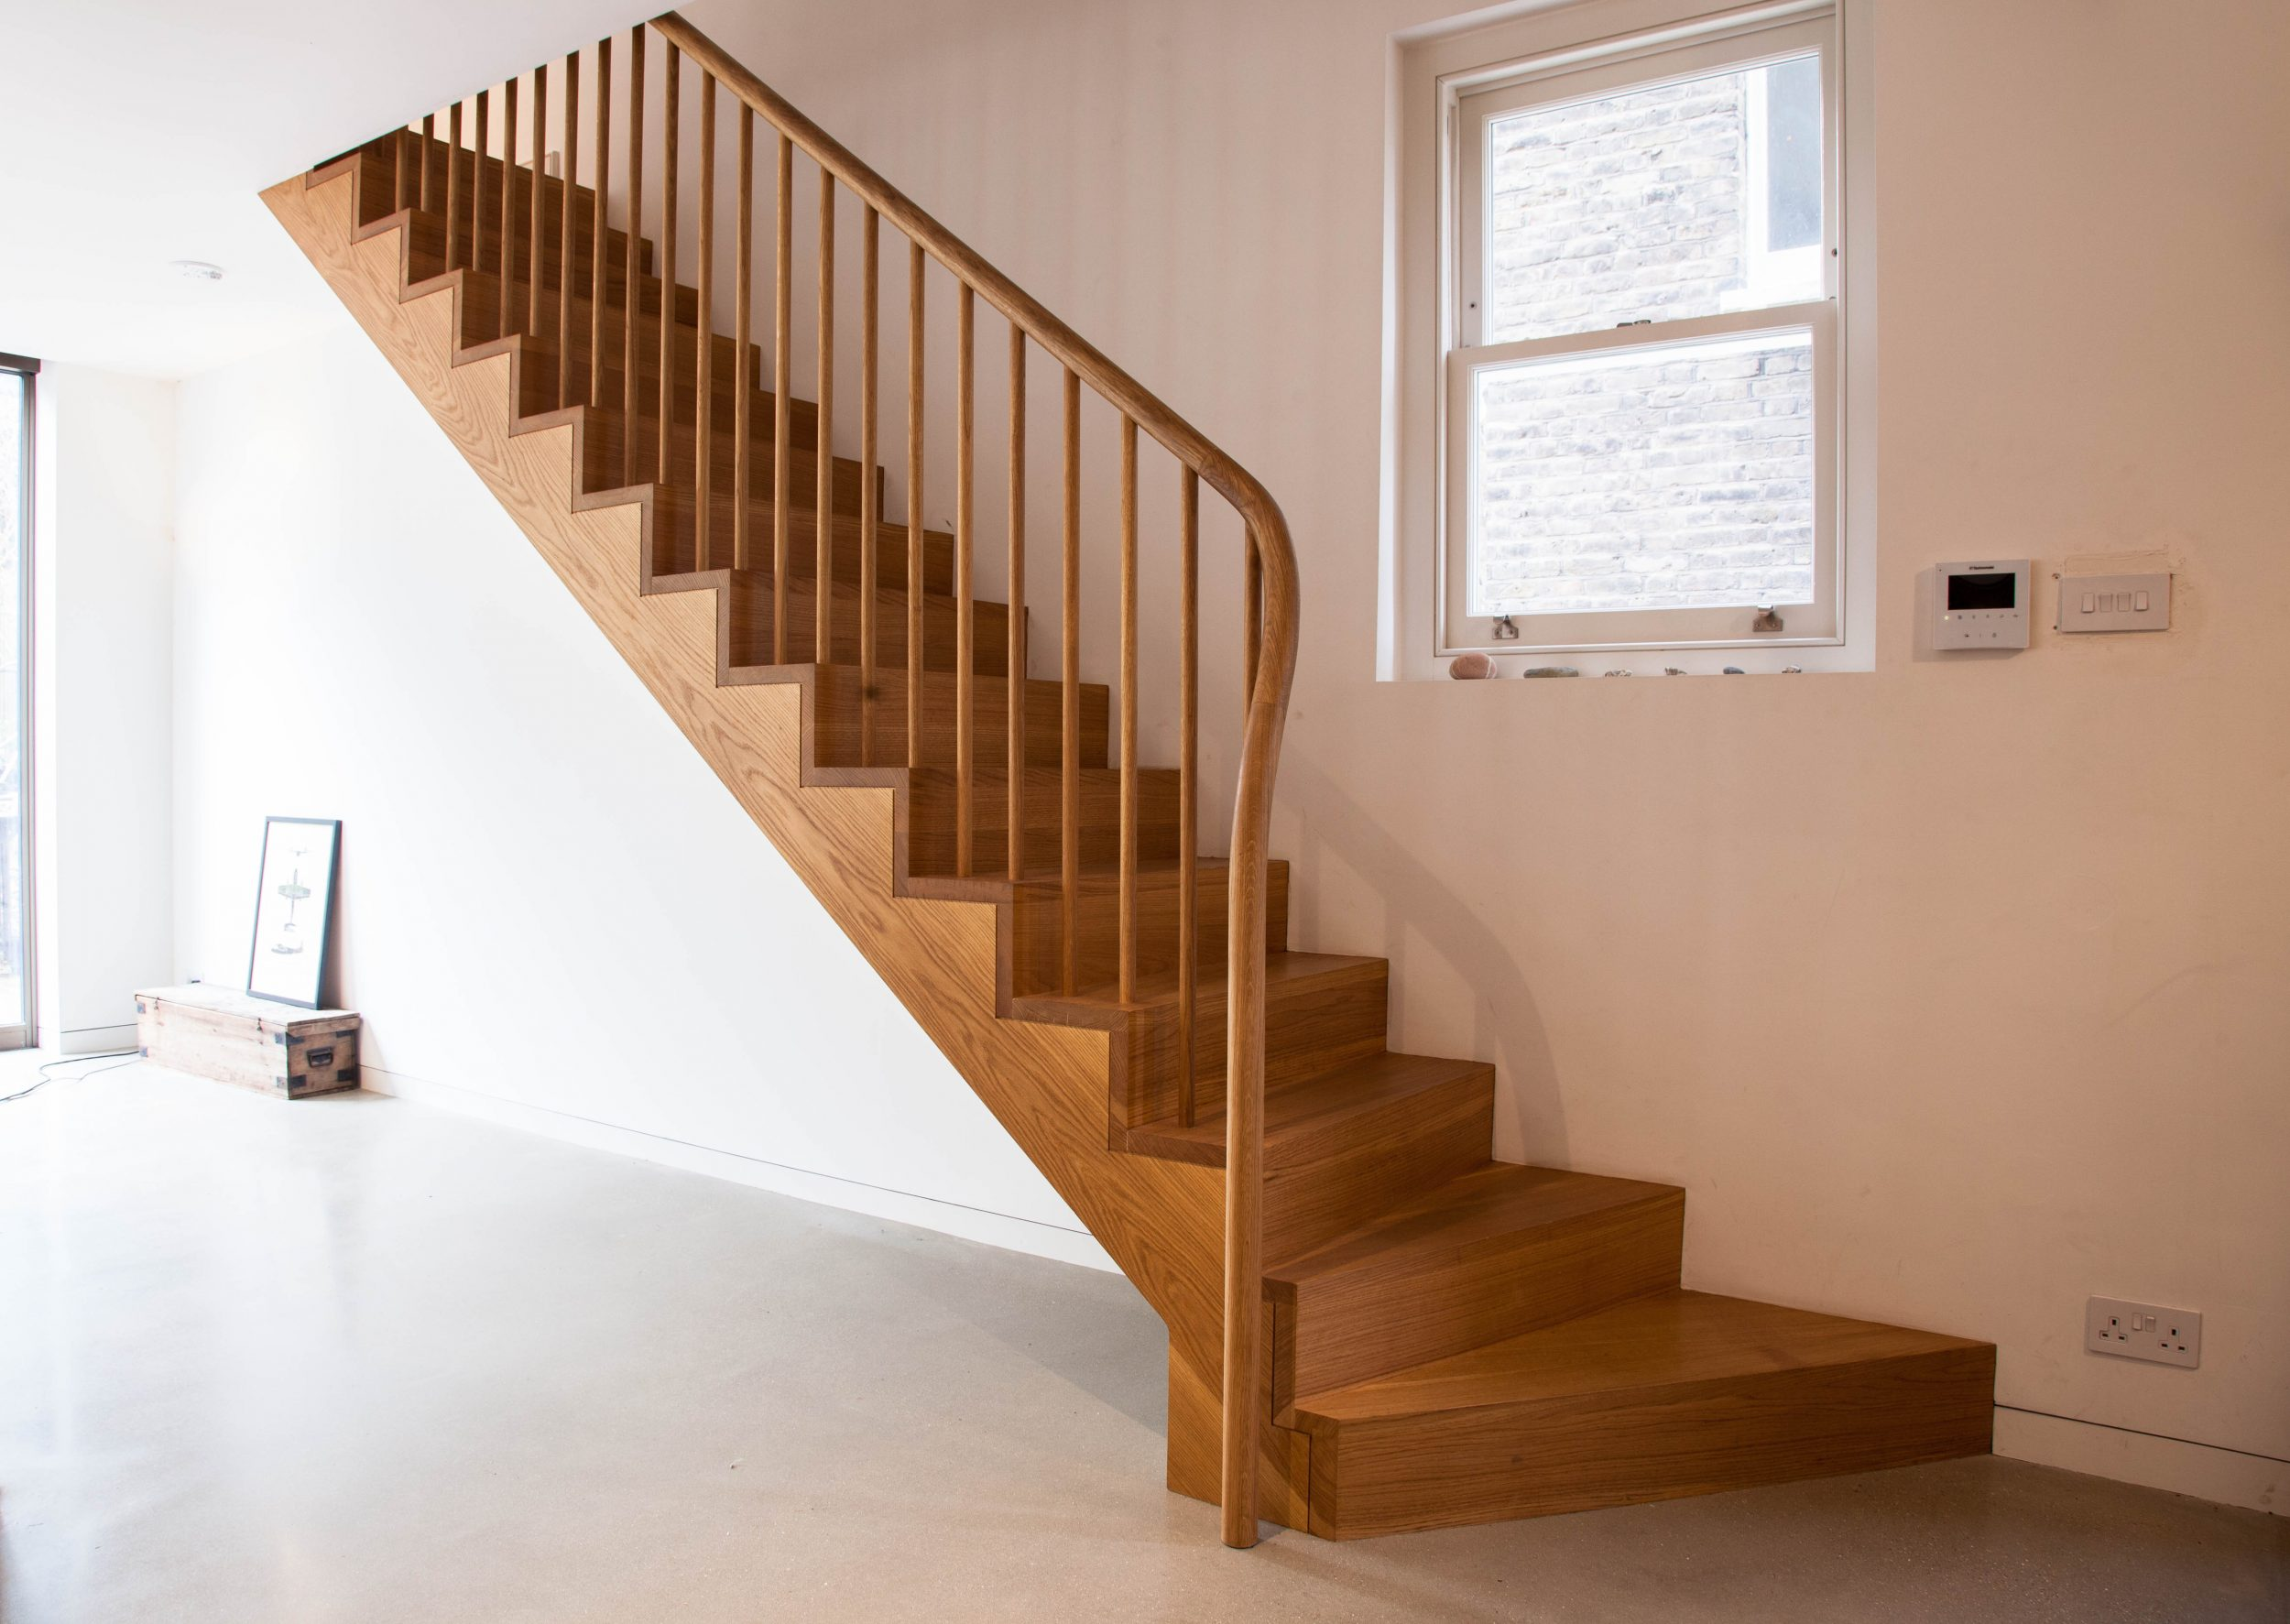 Wood Staircase - K&D joinery